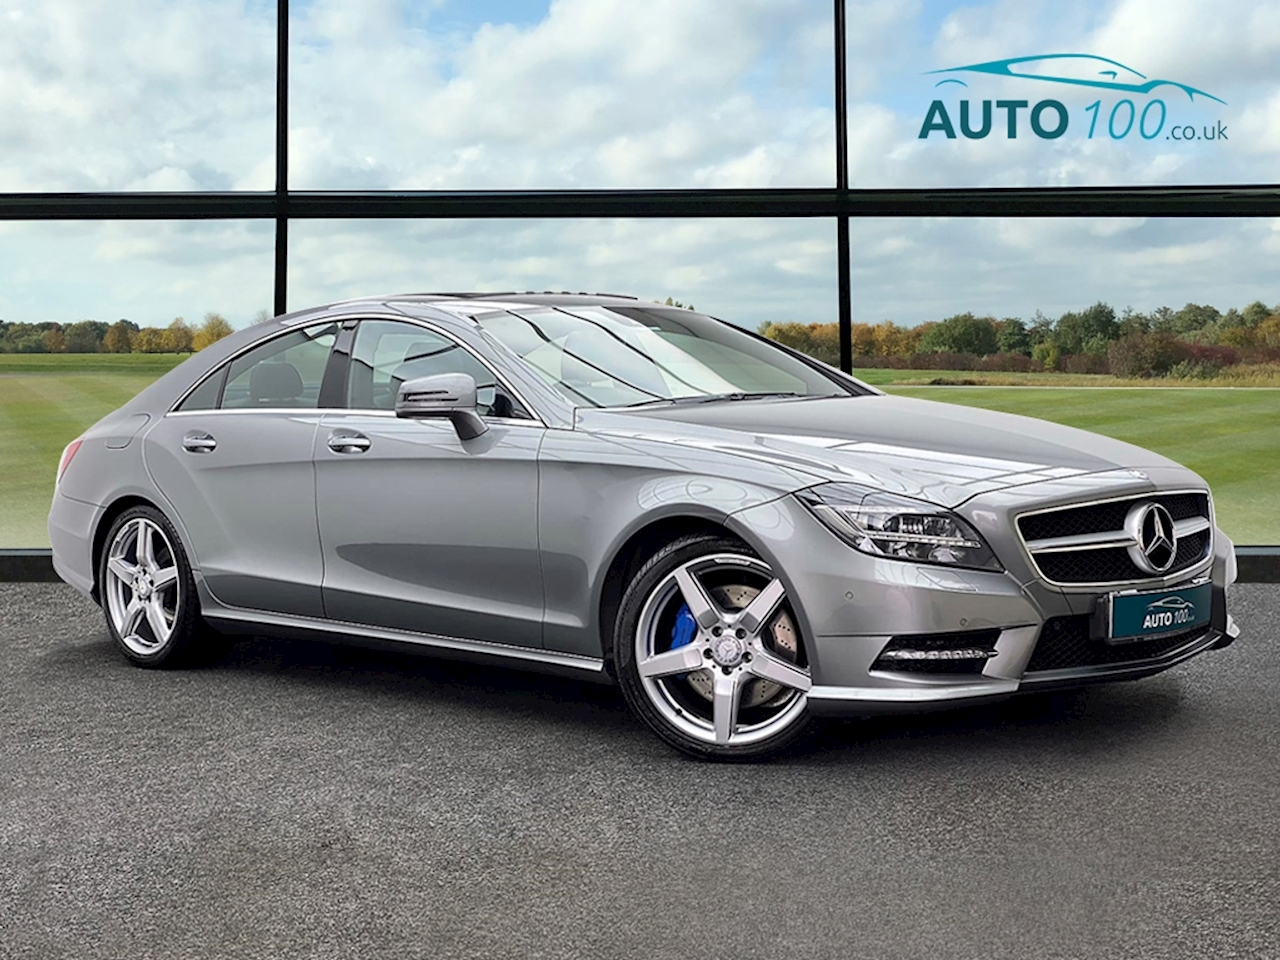 Mercedes-Benz Cls Cls350 Cdi Blueefficiency Amg Sport Coupe 3.0 Automatic Diesel